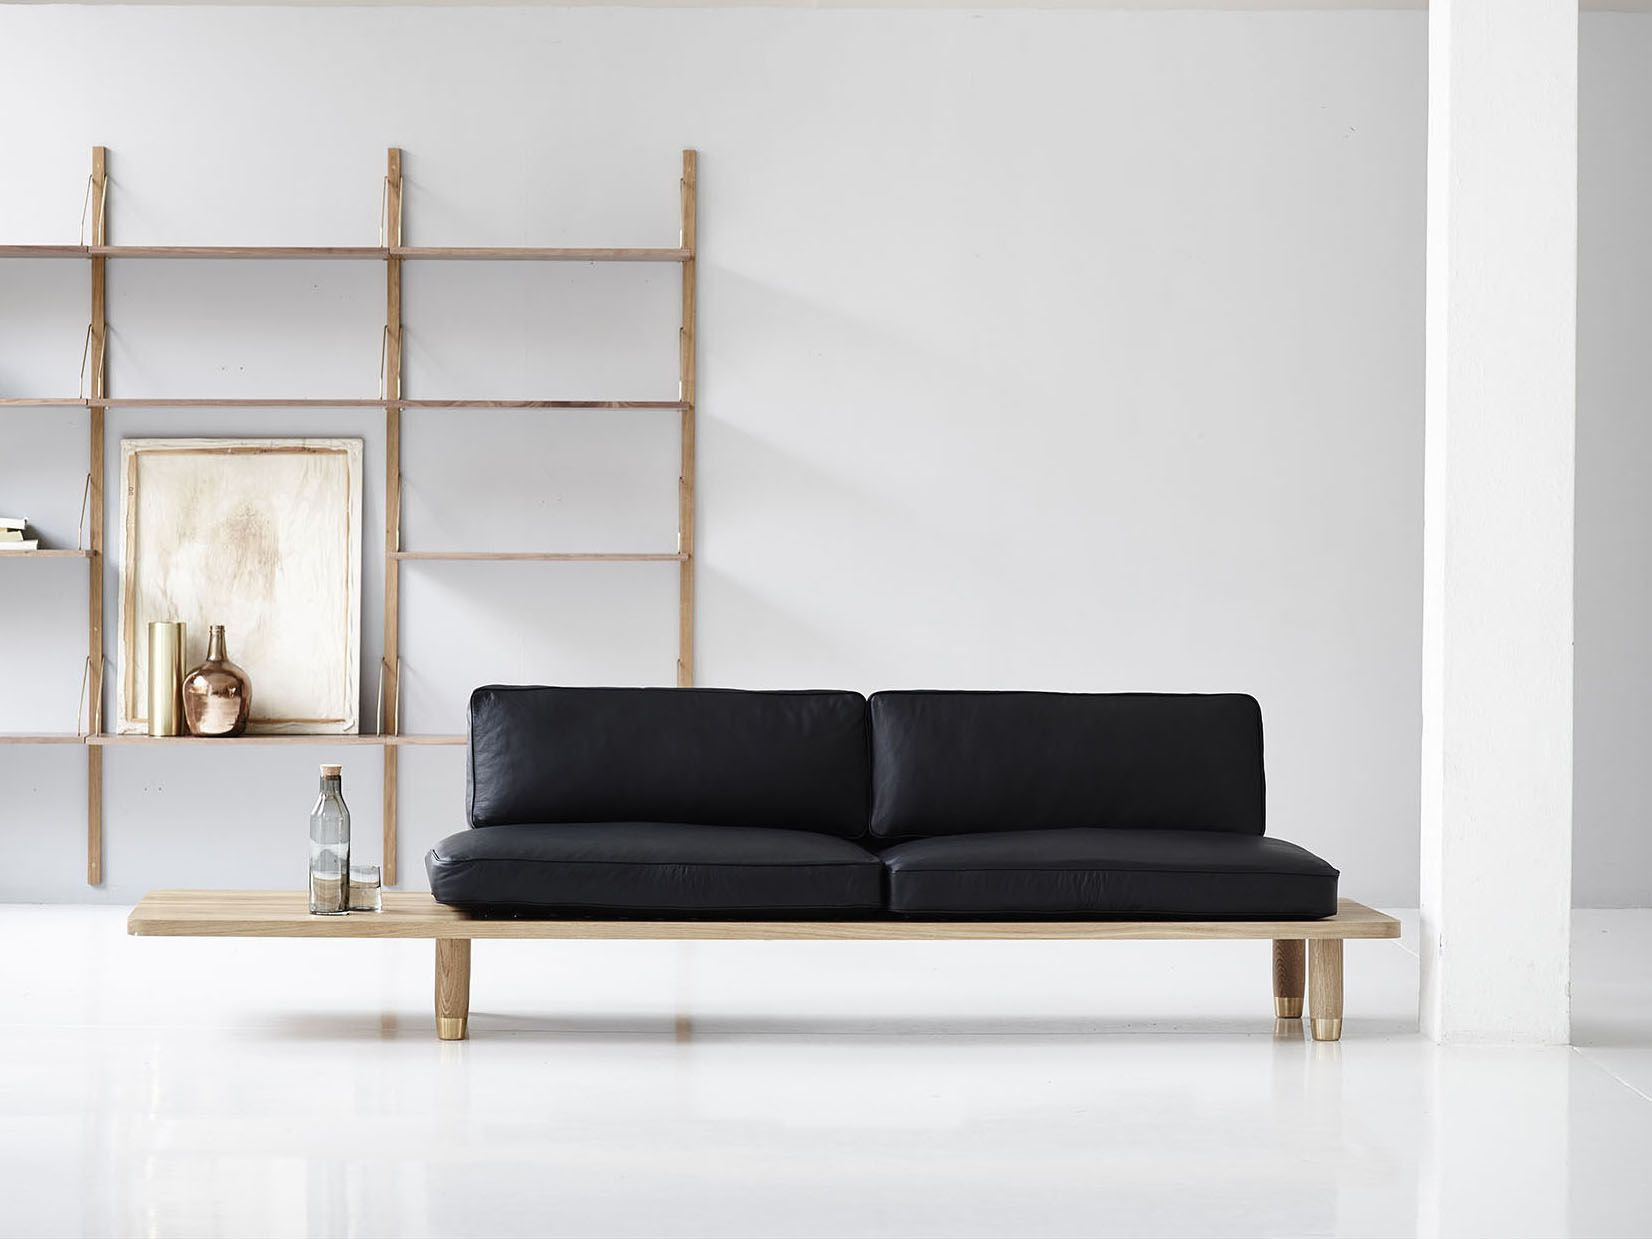 http://cdn.furniturefashion.com/wp-content/uploads/2014/08/black-leather- minimal-sofa-design.jpg | Home | Pinterest | Minimal and Interiors